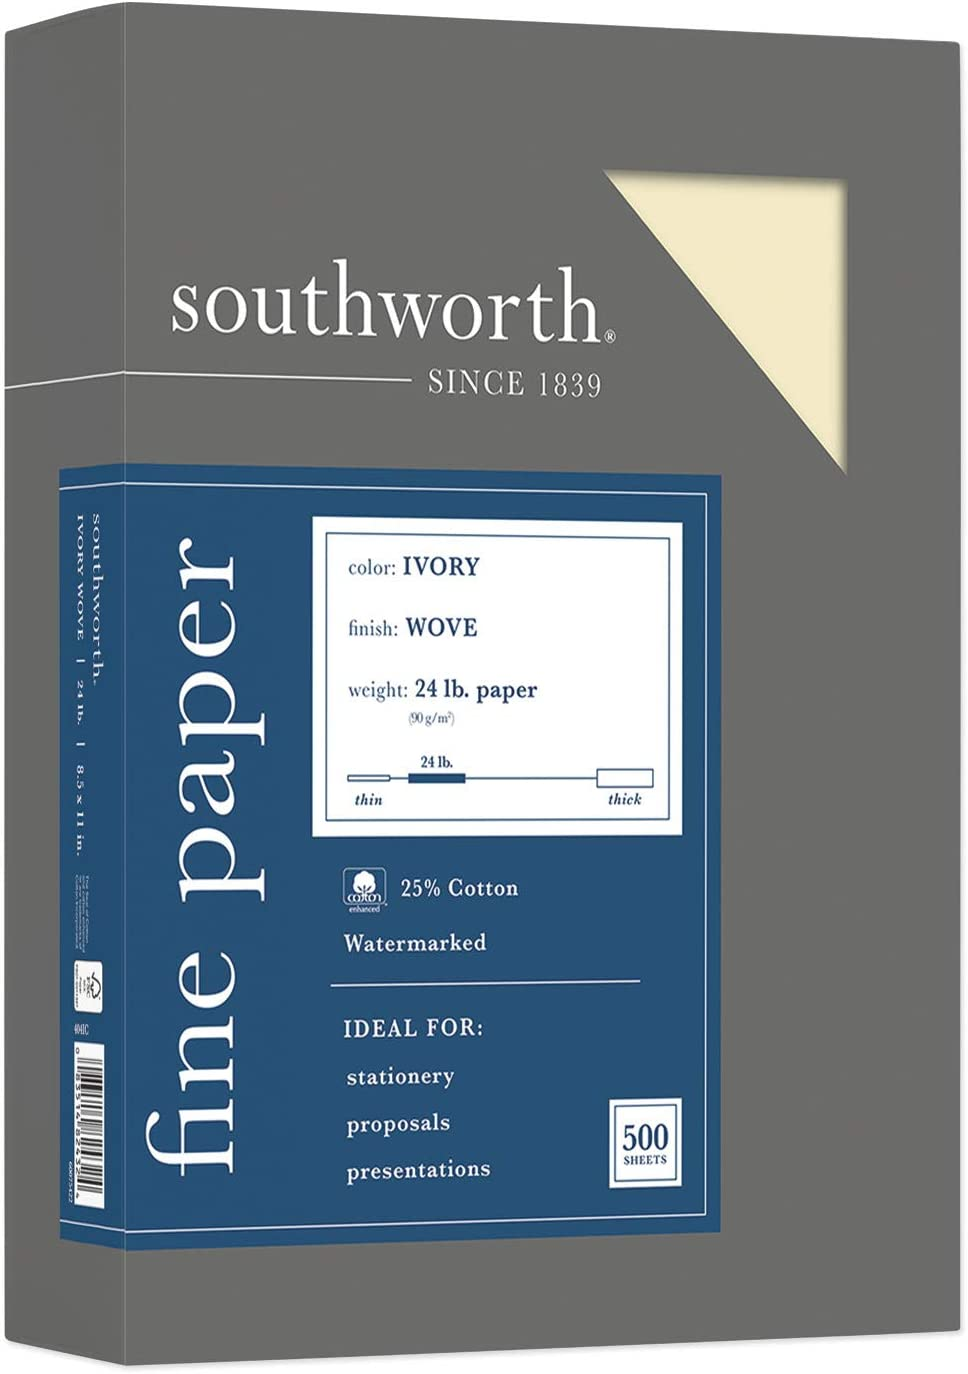 Southworth 404IC 25% Cotton Business Paper Ivory 24 lbs. Wove 8-1/2 x 11 500/Box FSC